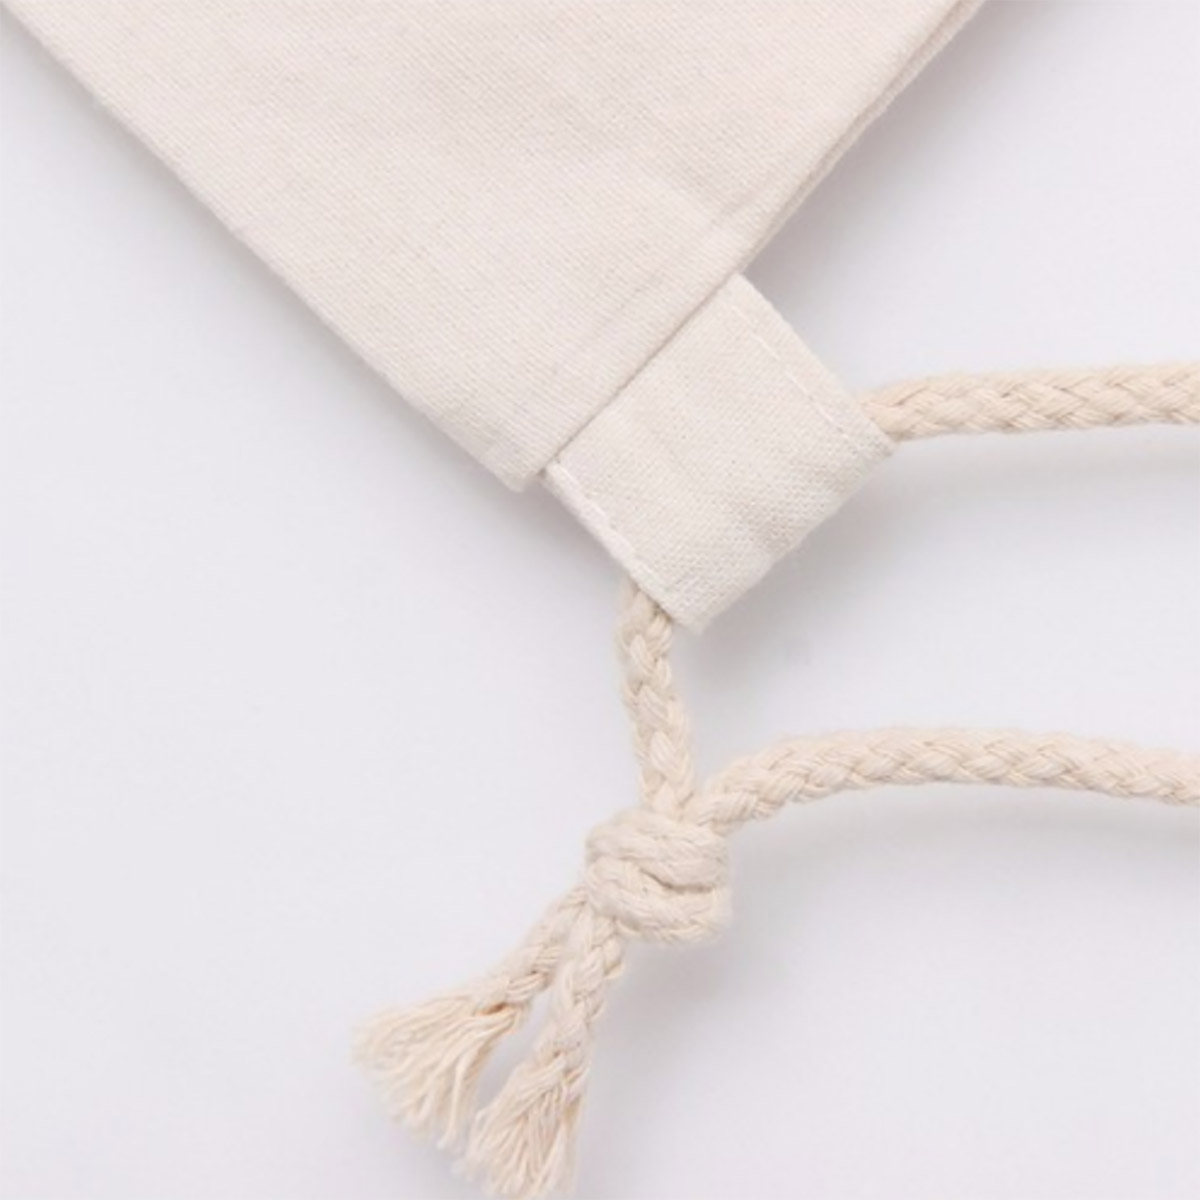 cotton bag closeup